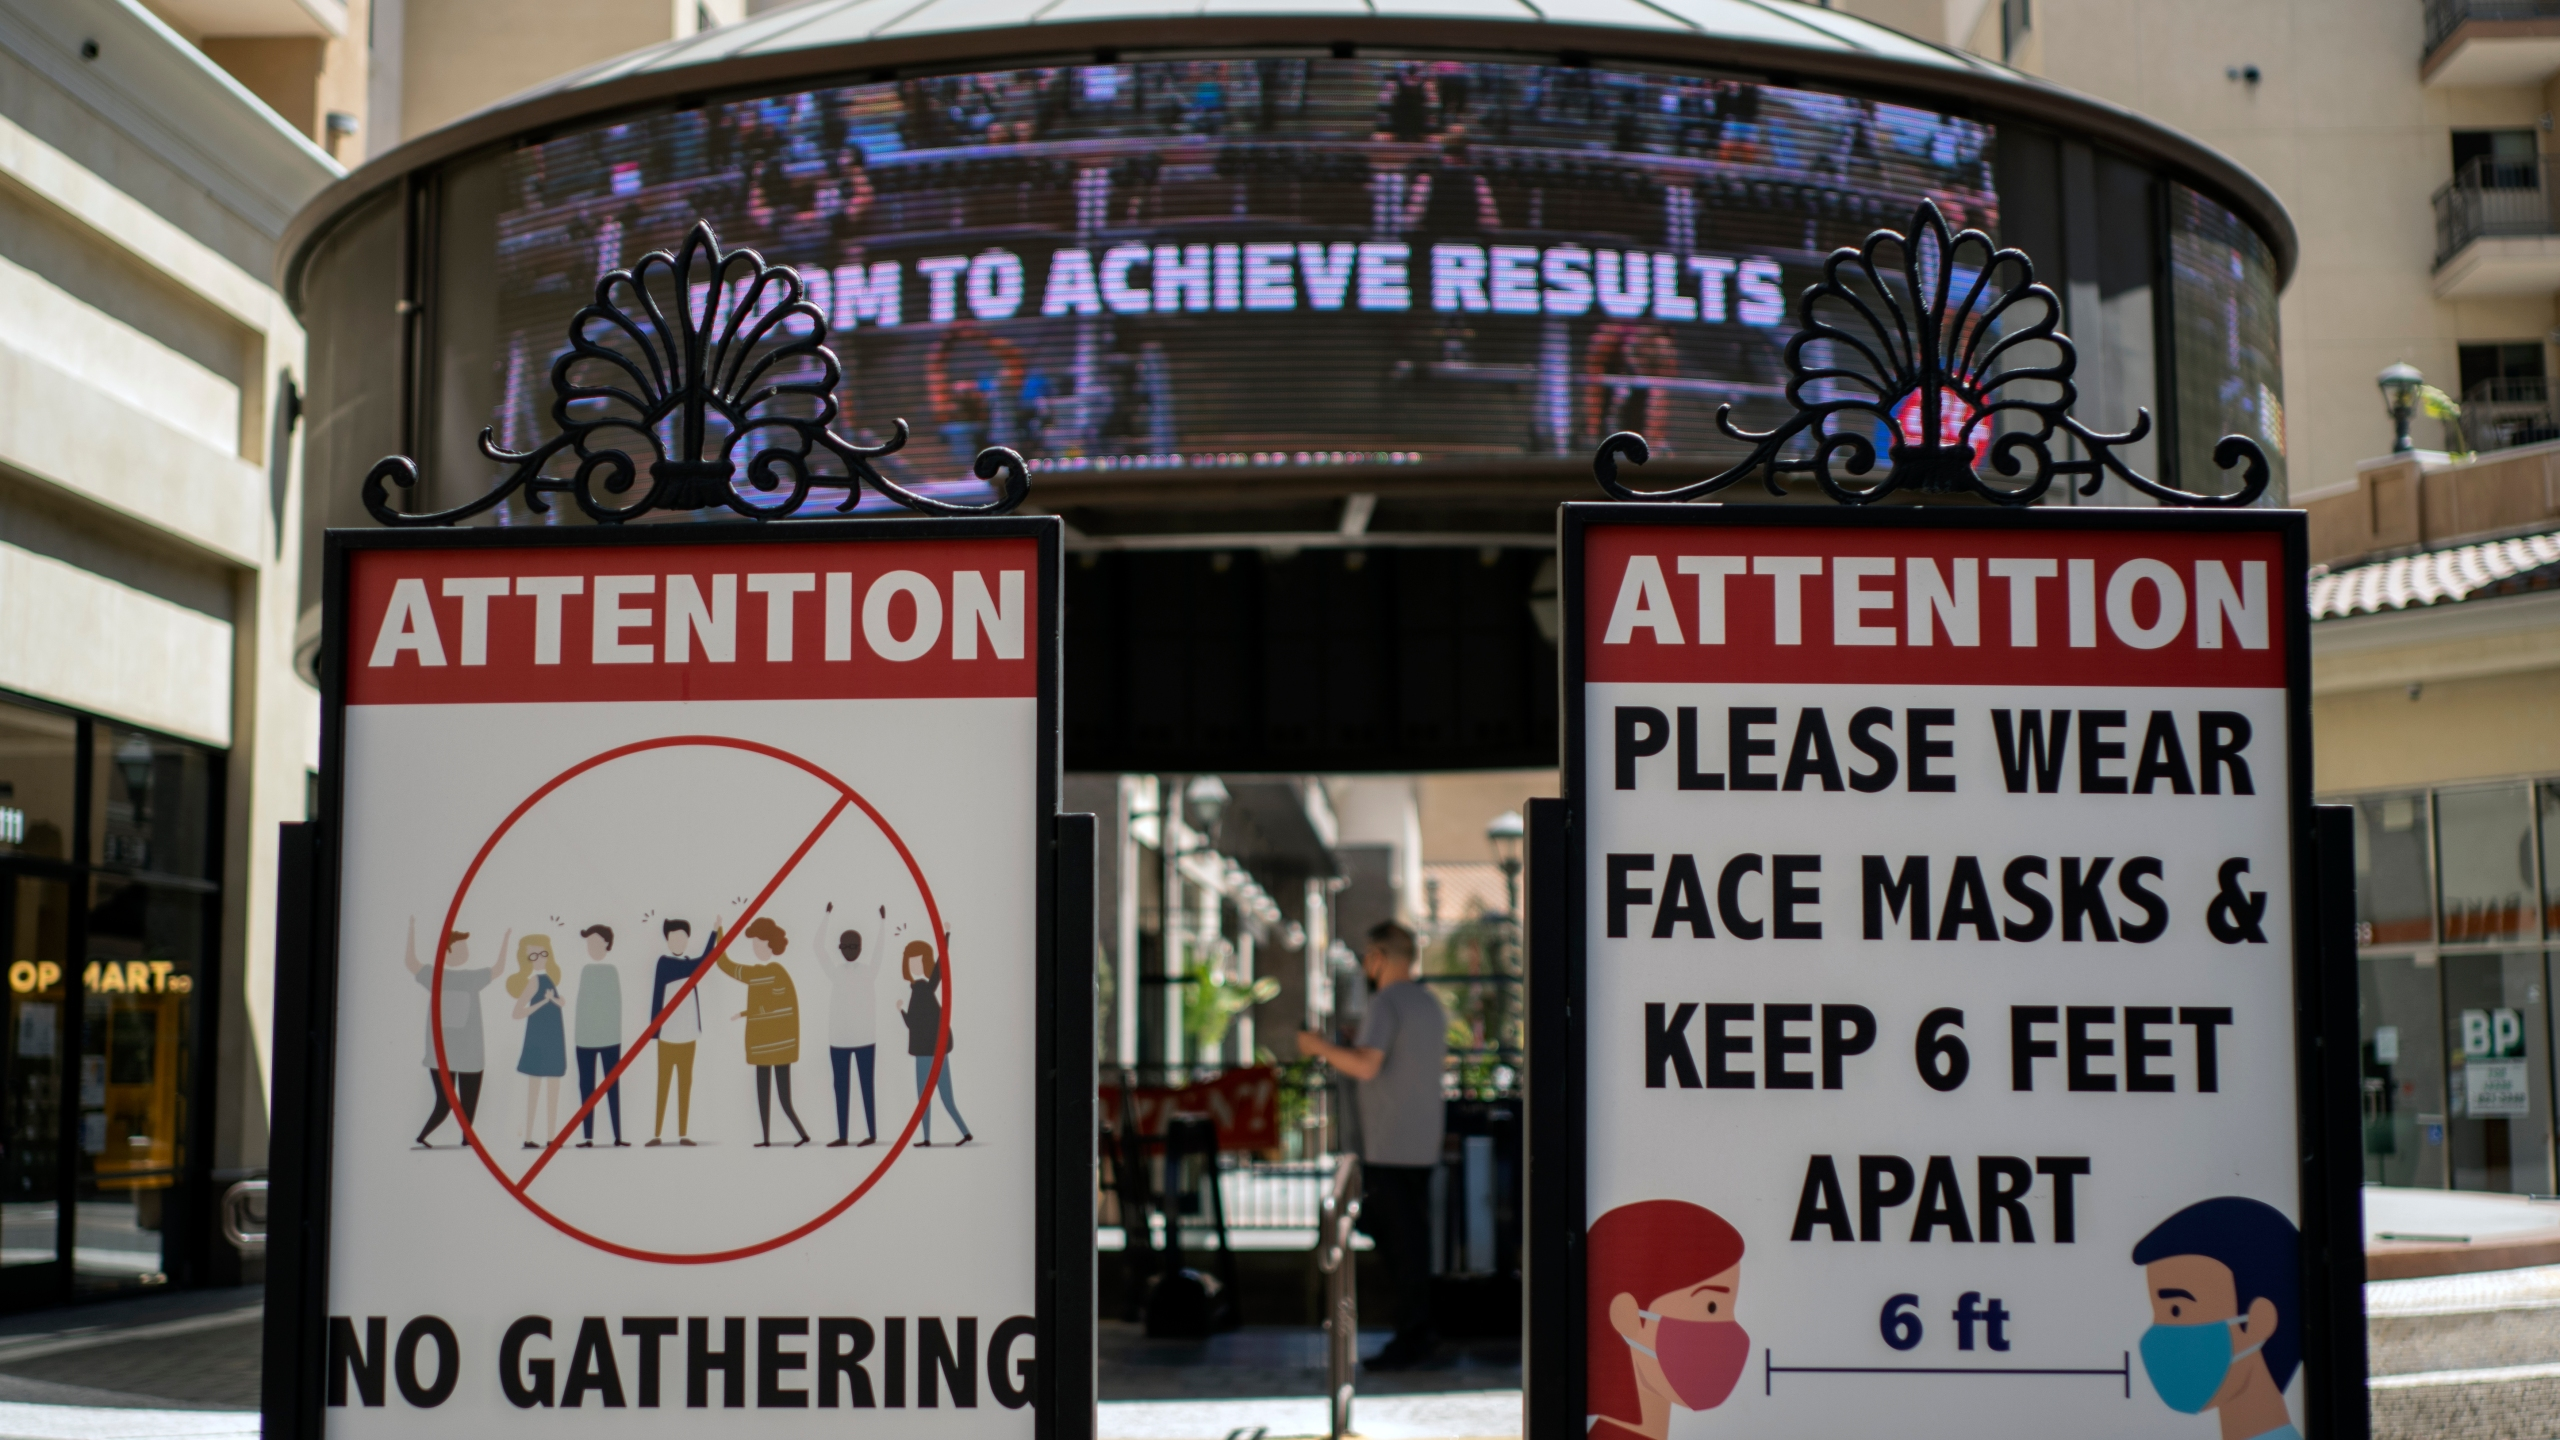 In this June 11, 2021, file photo, signs with social distancing guidelines and face mask requirements are posted at an outdoor mall amid the COVID-19 pandemic in Los Angeles. (AP Photo/Damian Dovarganes, File)